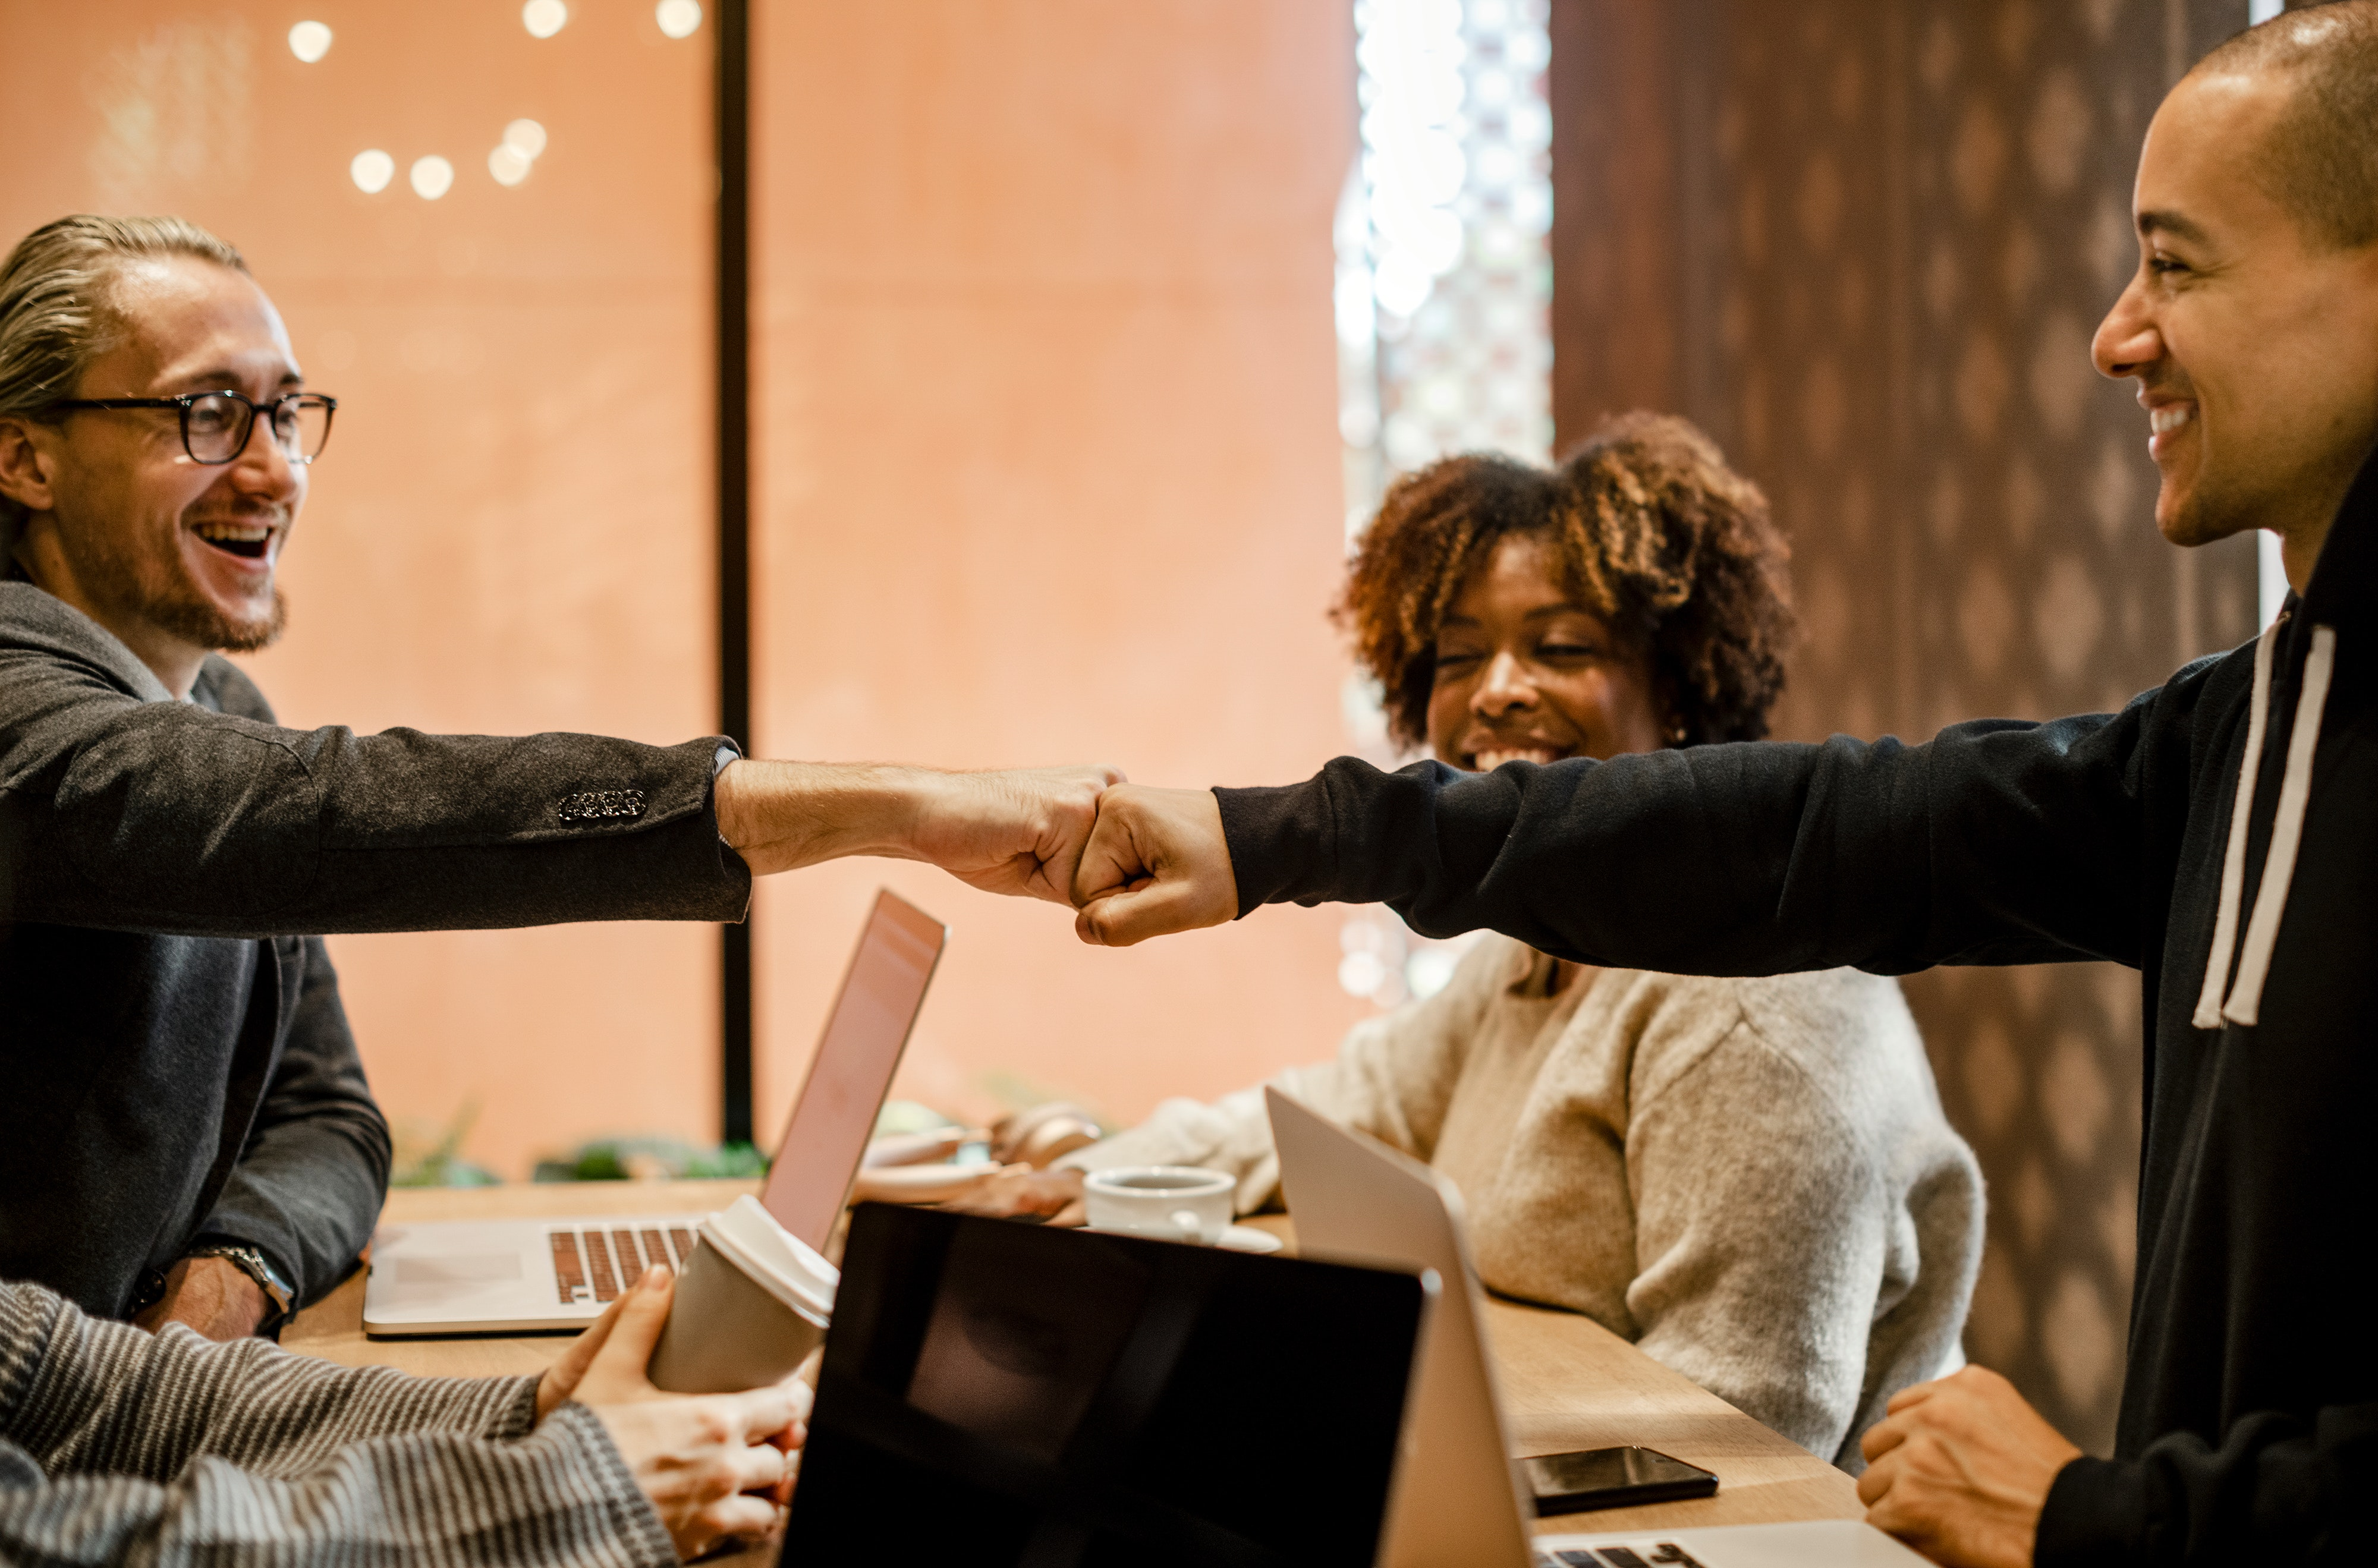 flexing your leadership style